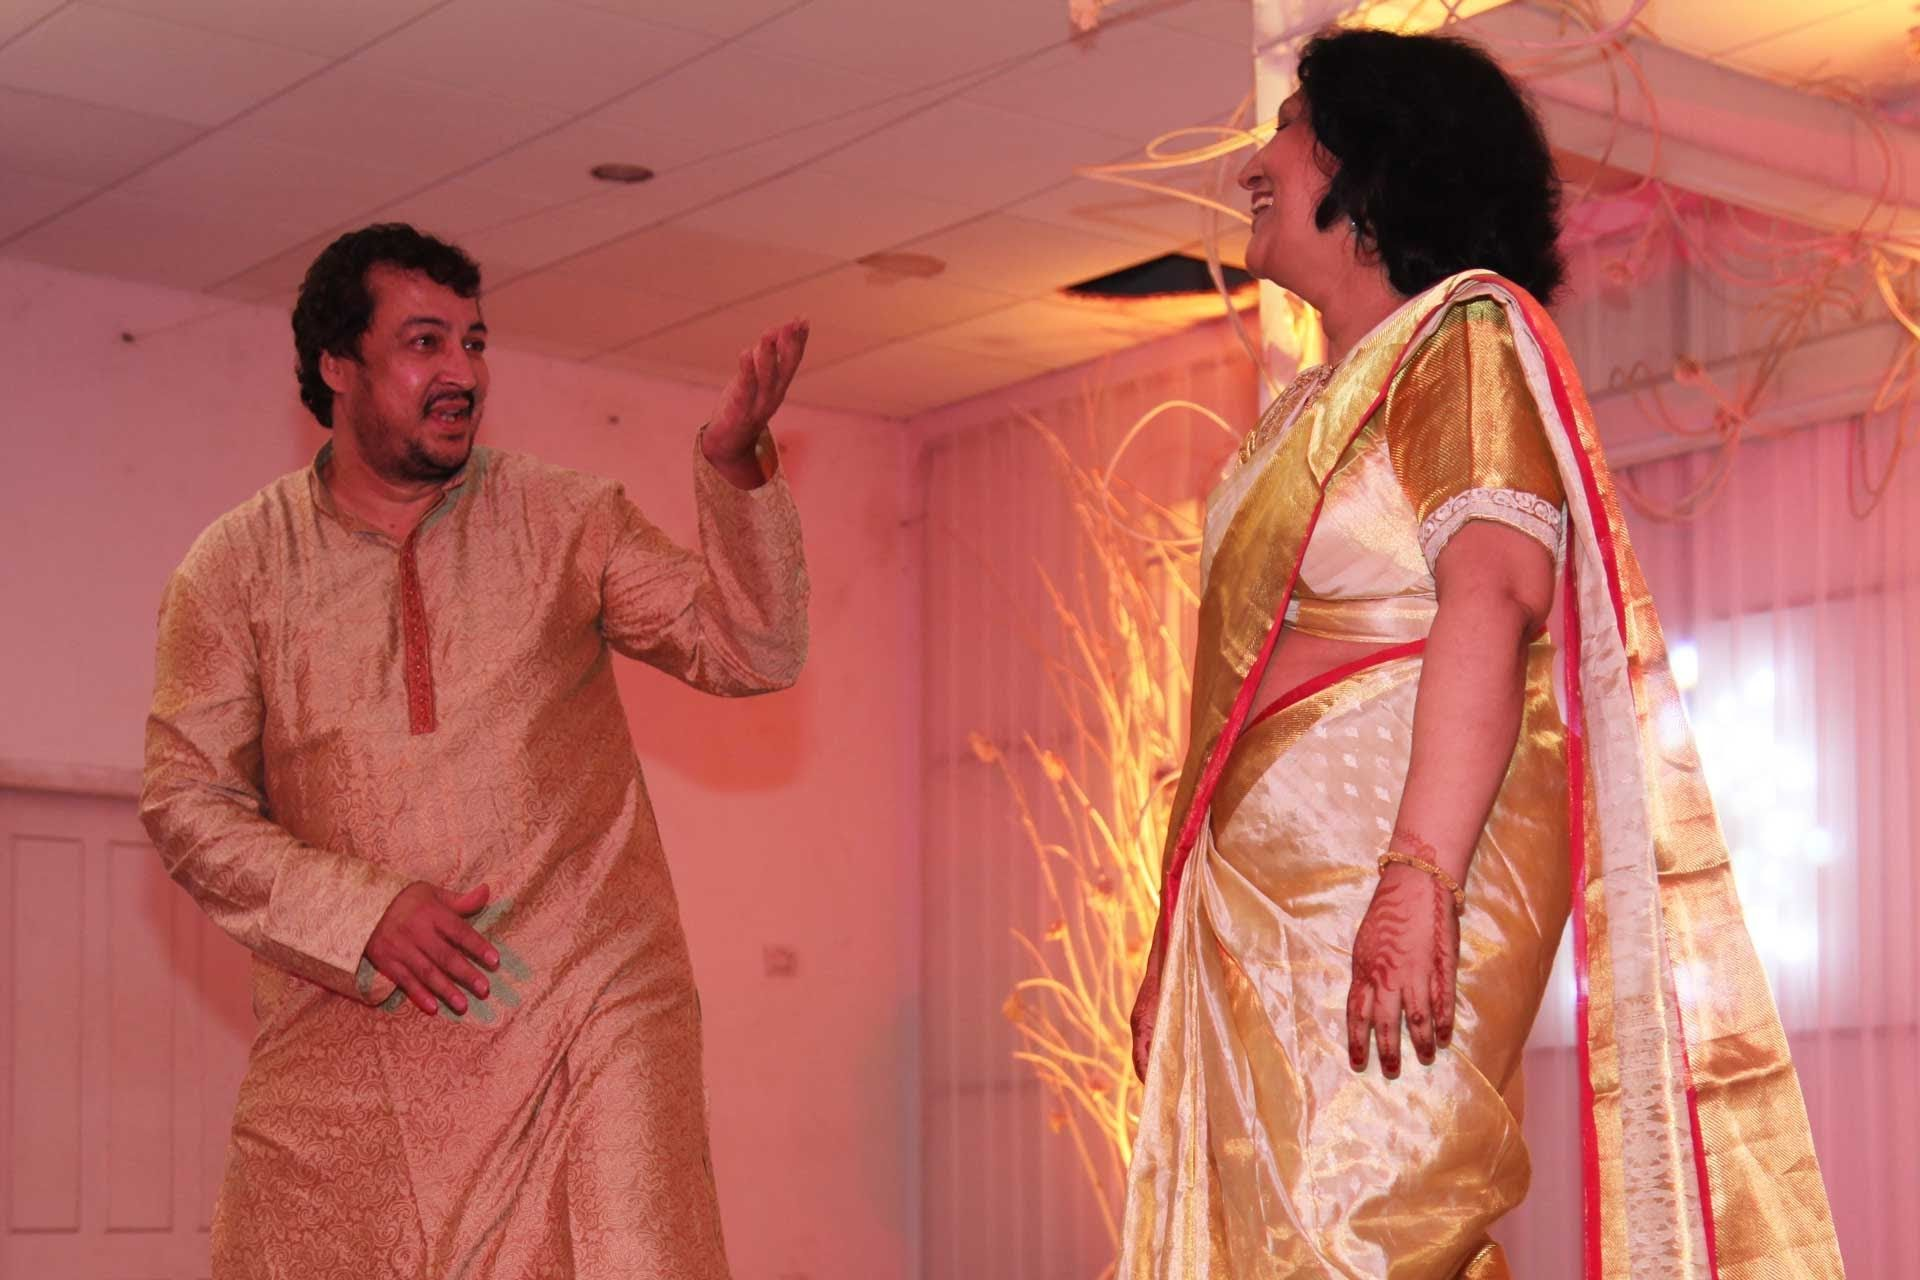 Mom And Pop Dance To The Tunes Of Old Hindi Songs Medley Bhule Bisre Geet For Sangeet Function Day Before Actual Wedding Ceremony